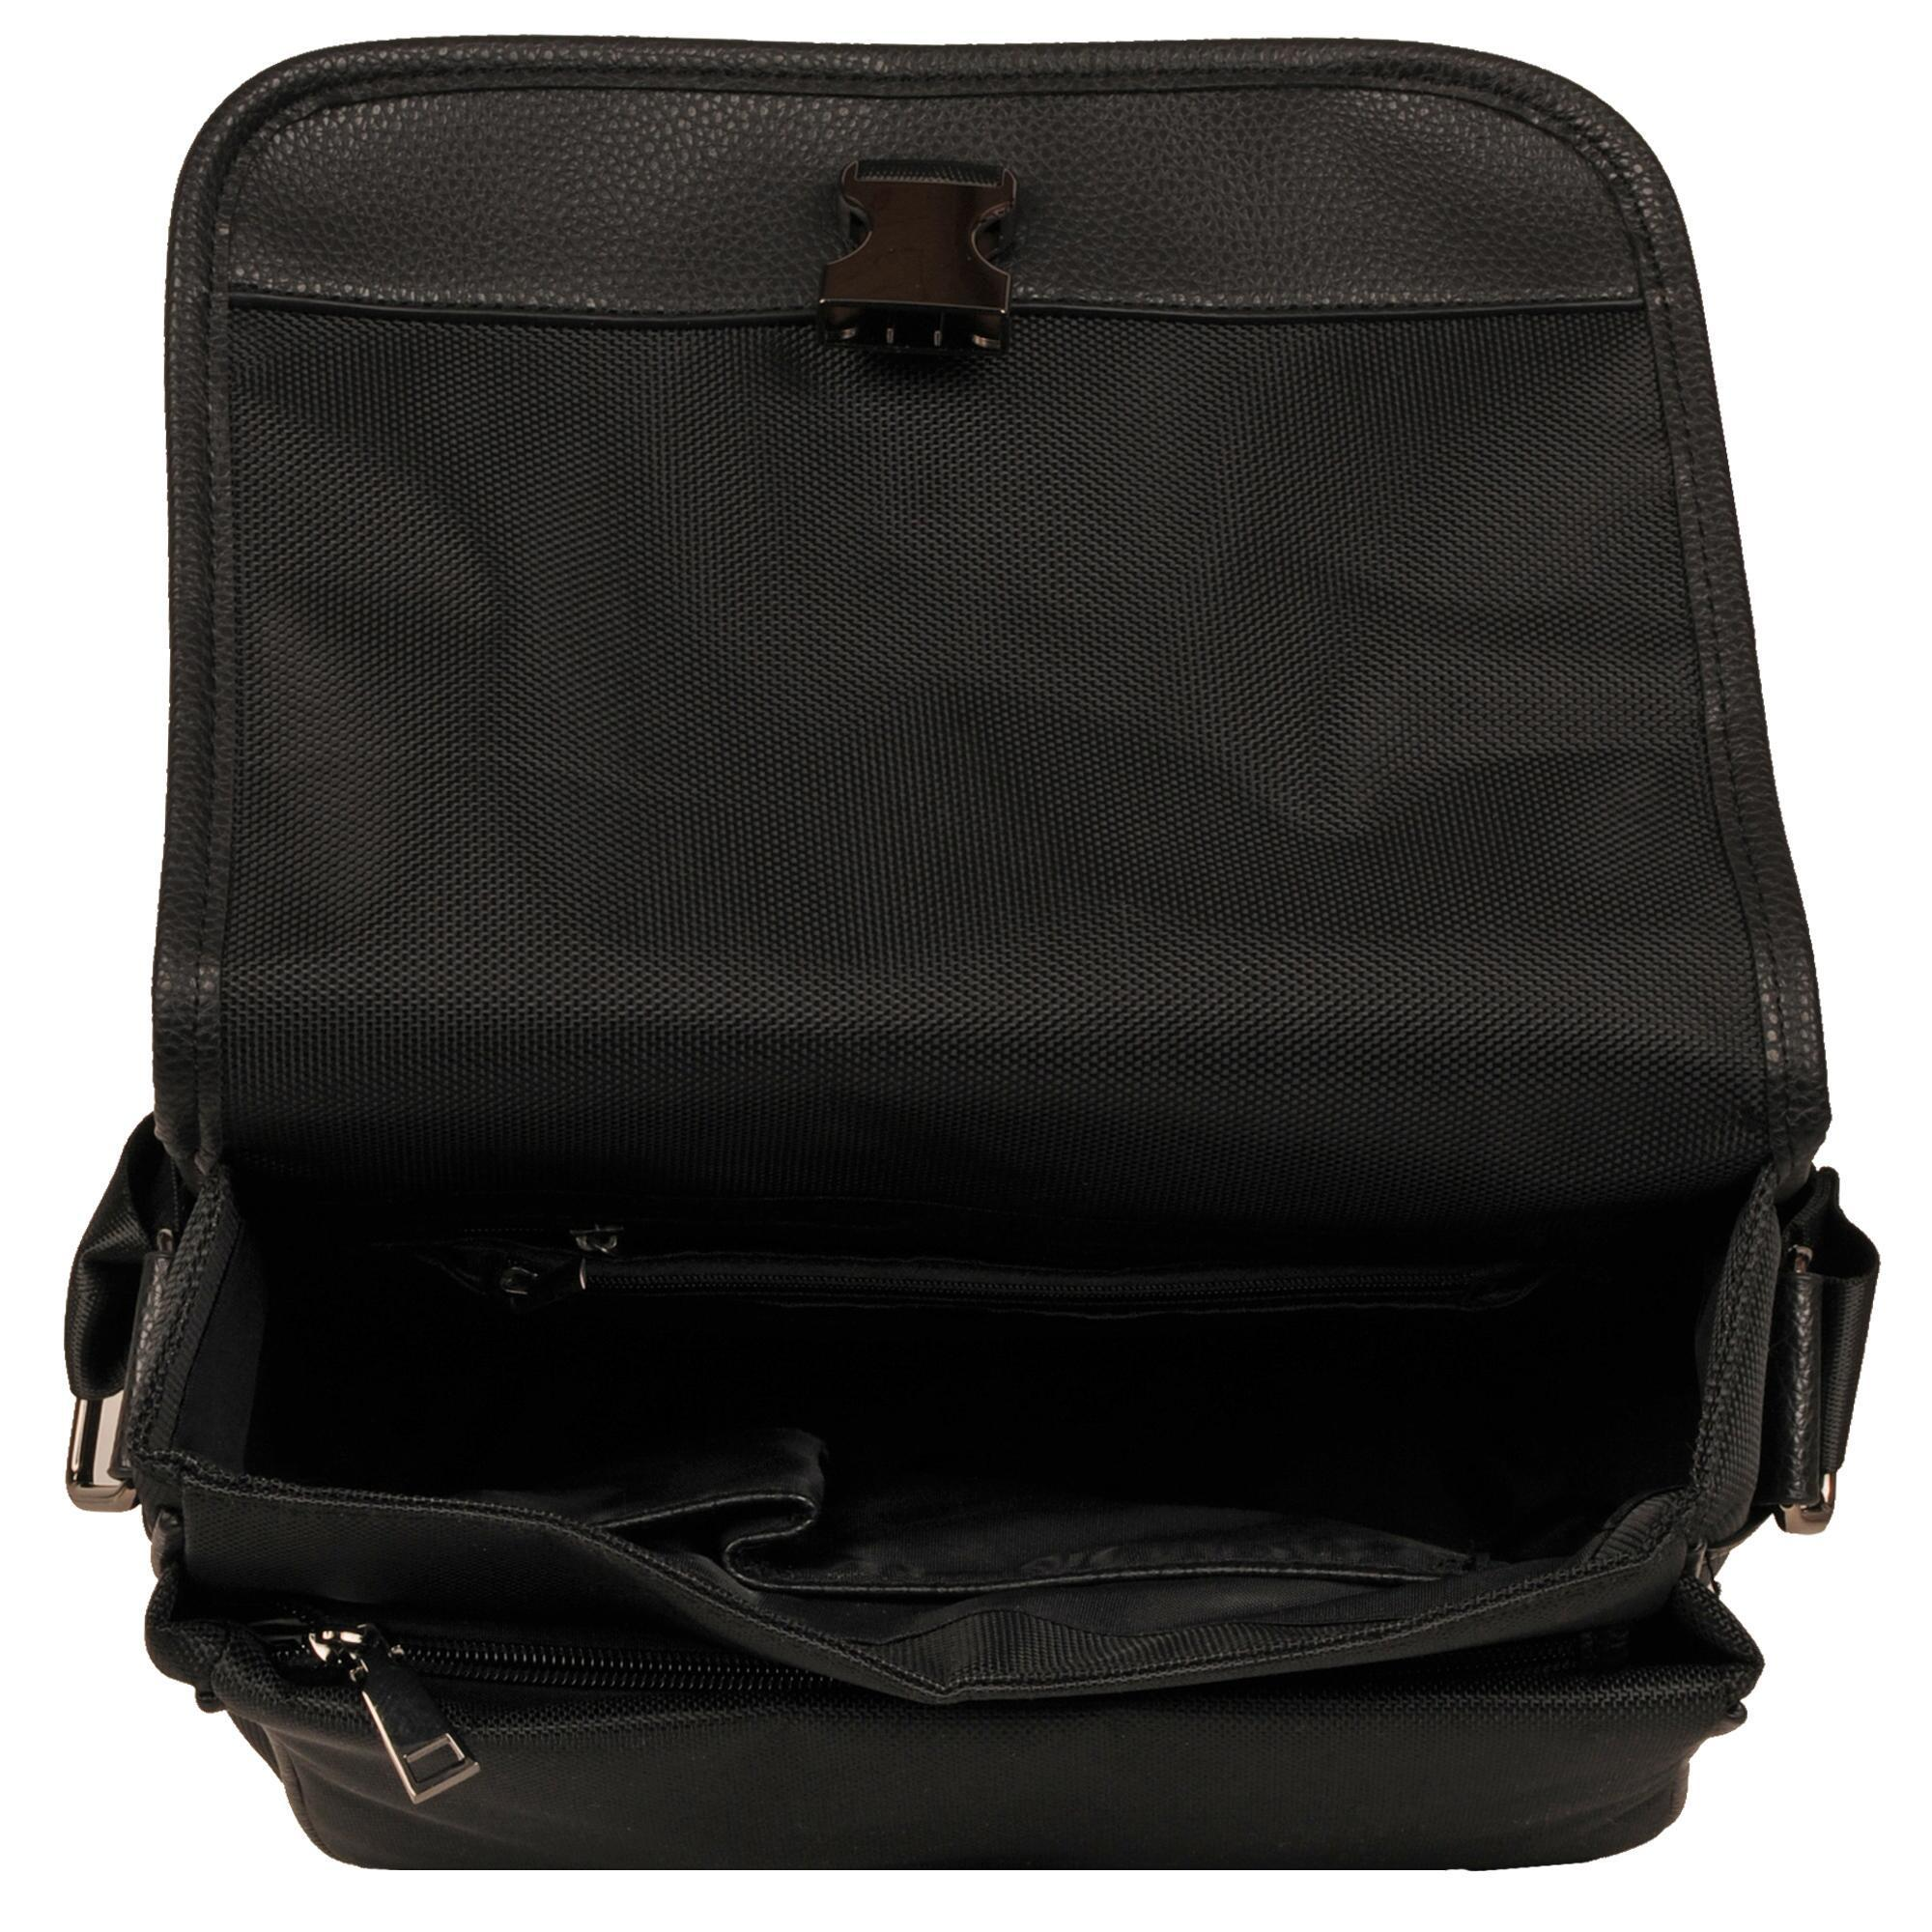 Wilson leather day bag